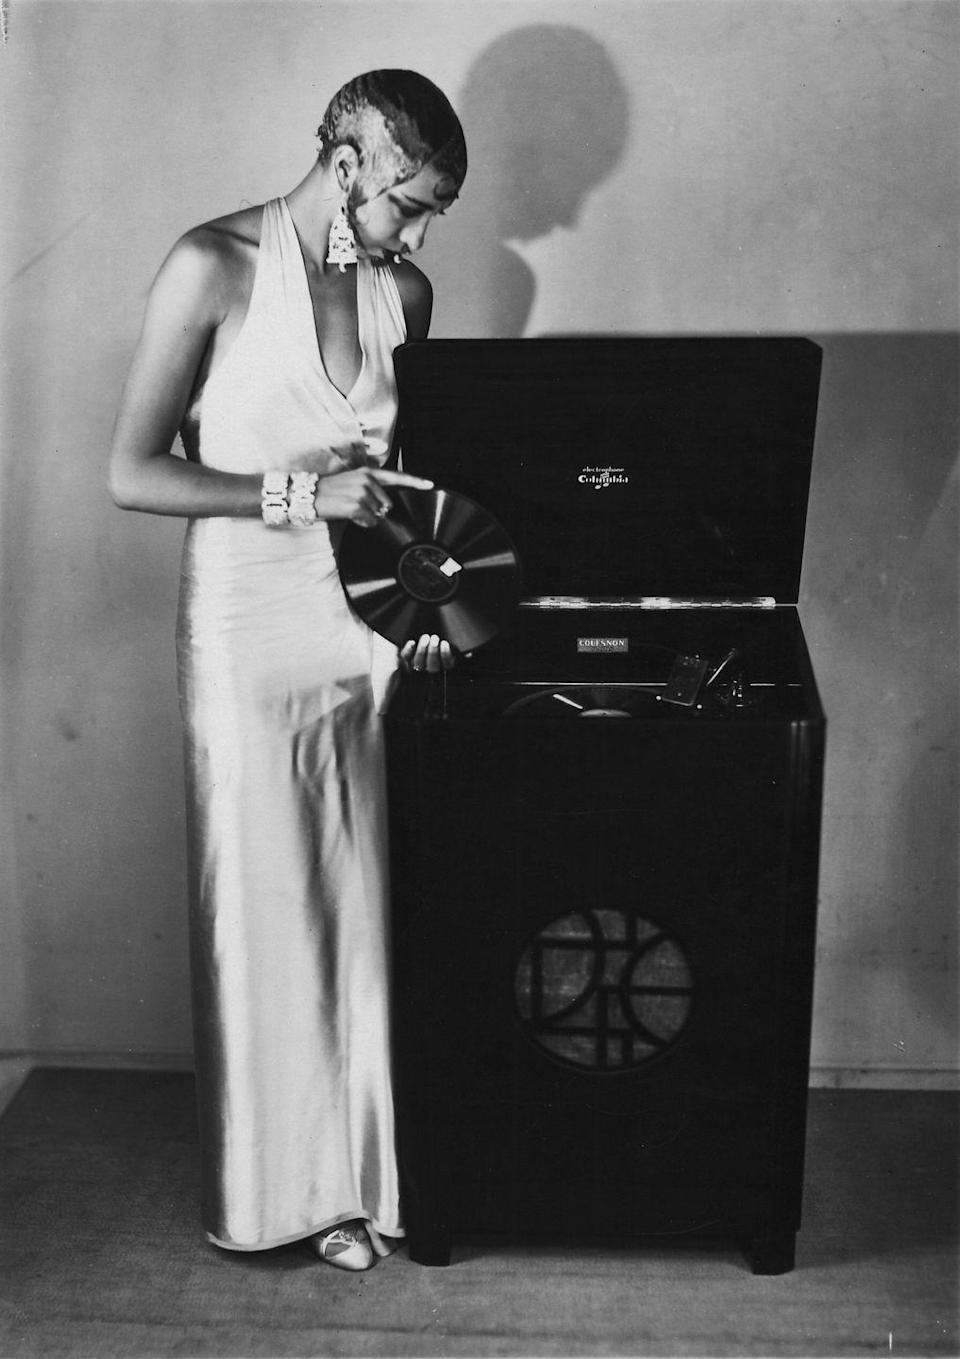 """<p>With the rise in Baker's profile, opportunities like recording her own music began to appear. In 1926, the singer recorded her first song and throughout the next 50 years she <a href=""""https://medium.com/@johnjdunphy/josephine-baker-the-activist-black-venus-d0955dd19a0b"""" rel=""""nofollow noopener"""" target=""""_blank"""" data-ylk=""""slk:would produce over 200 songs"""" class=""""link rapid-noclick-resp"""">would produce over 200 songs</a> in various languages.</p>"""